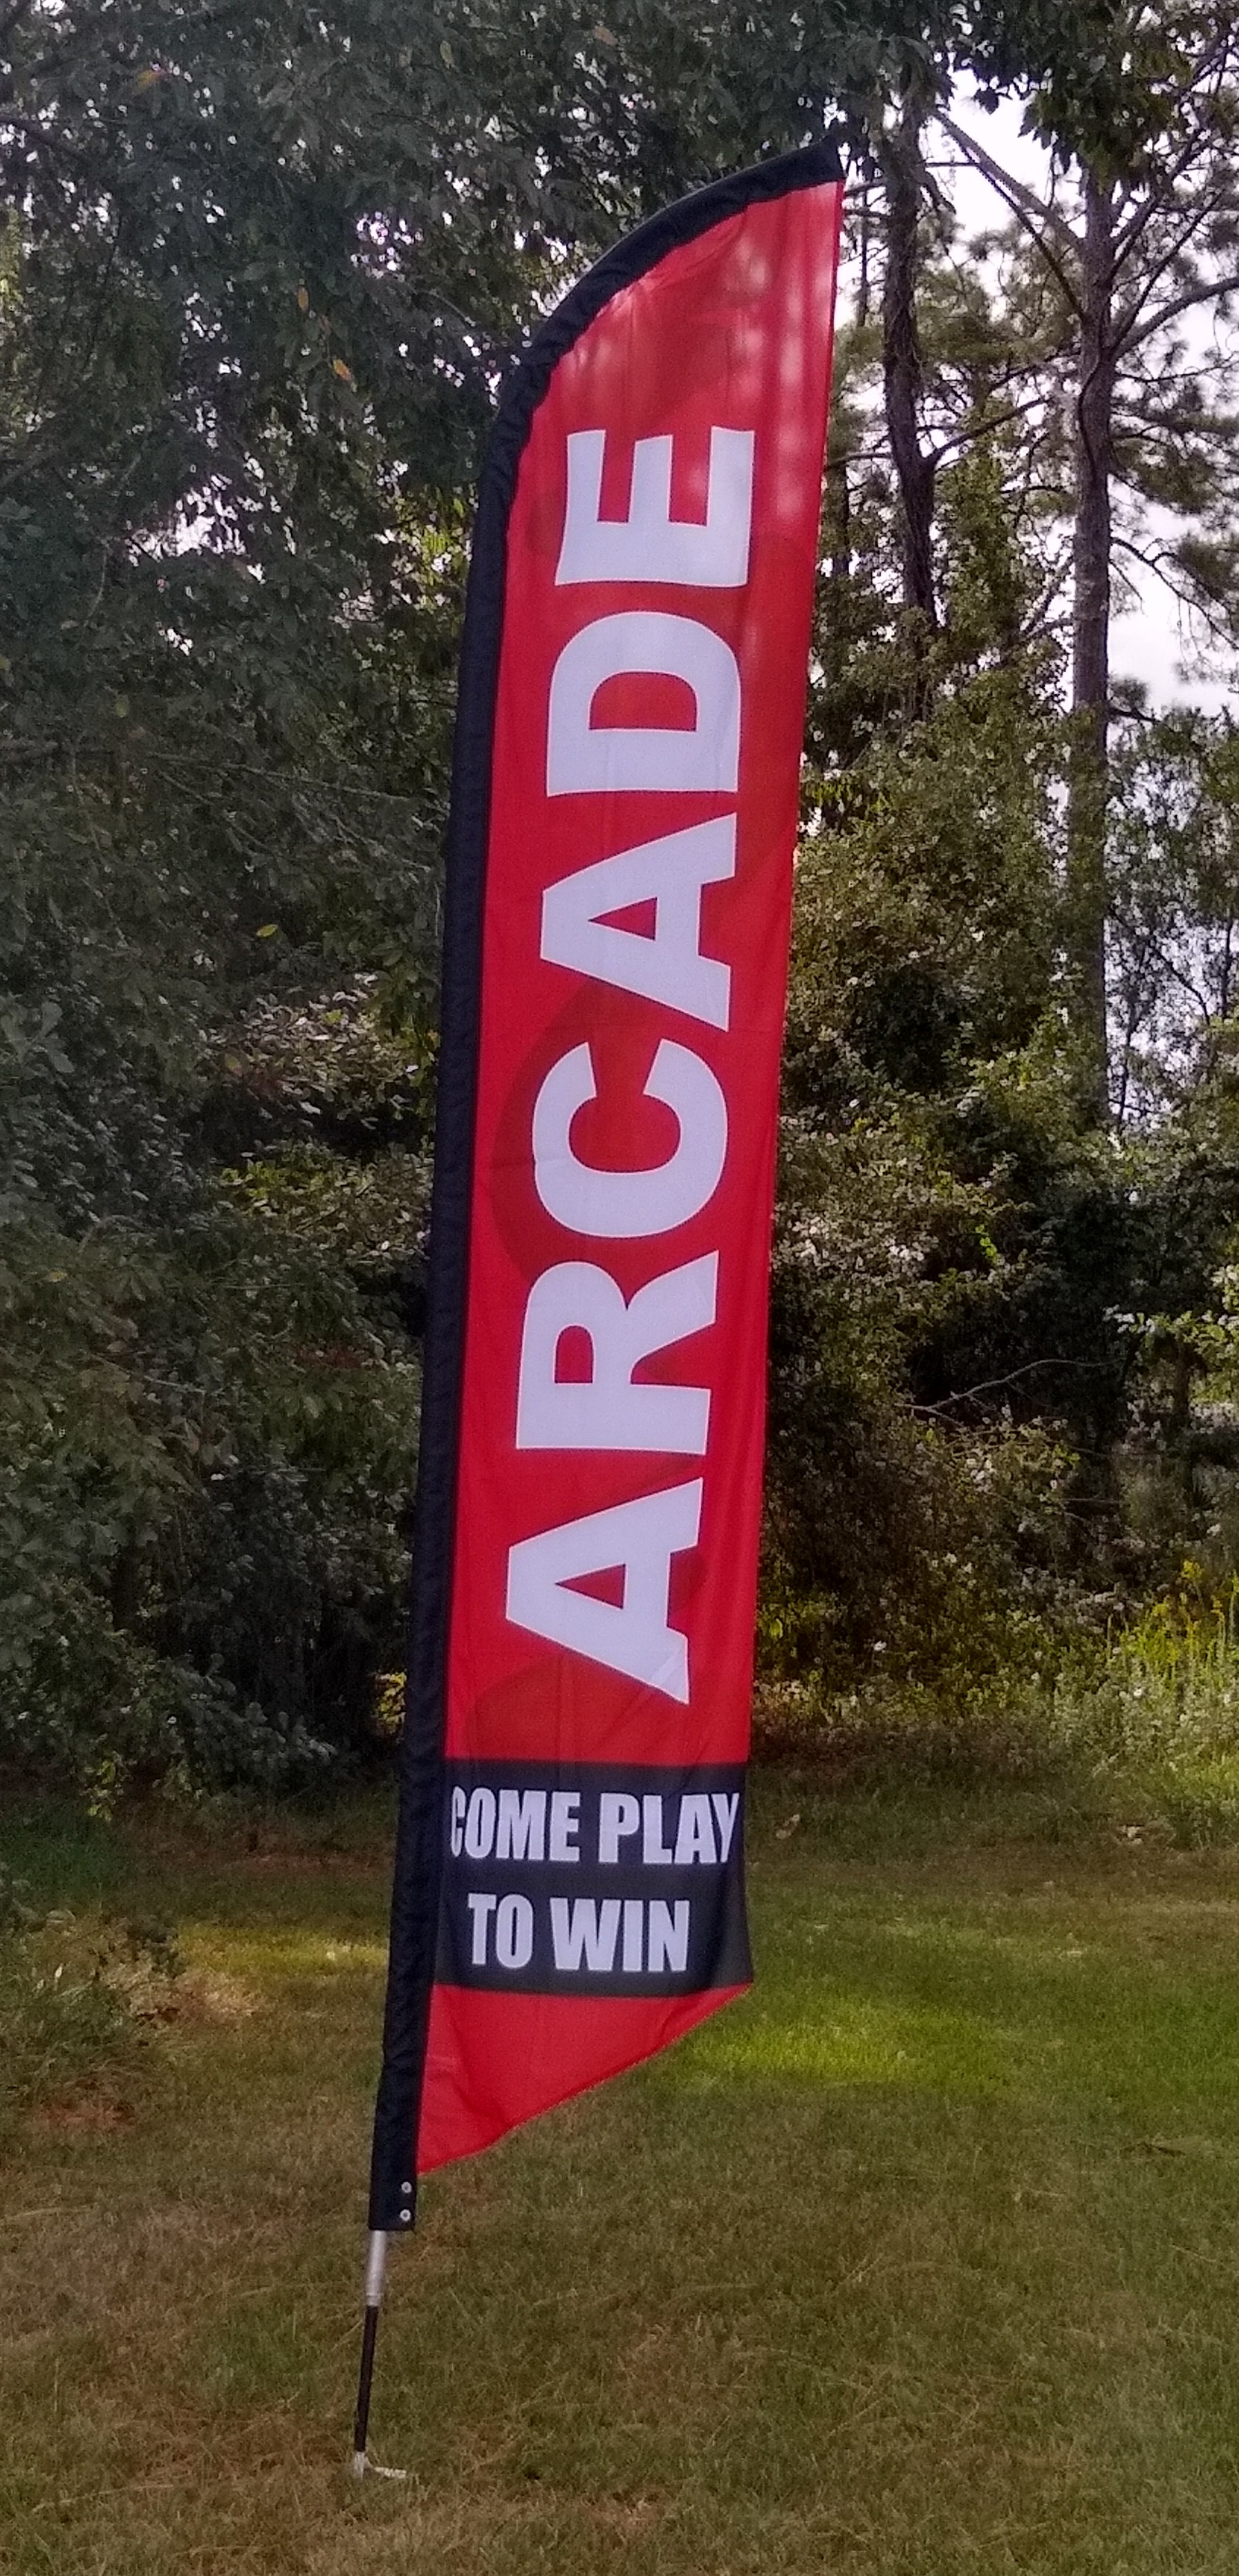 ARCADE COME PLAY TO WIN swooper banner sign flag